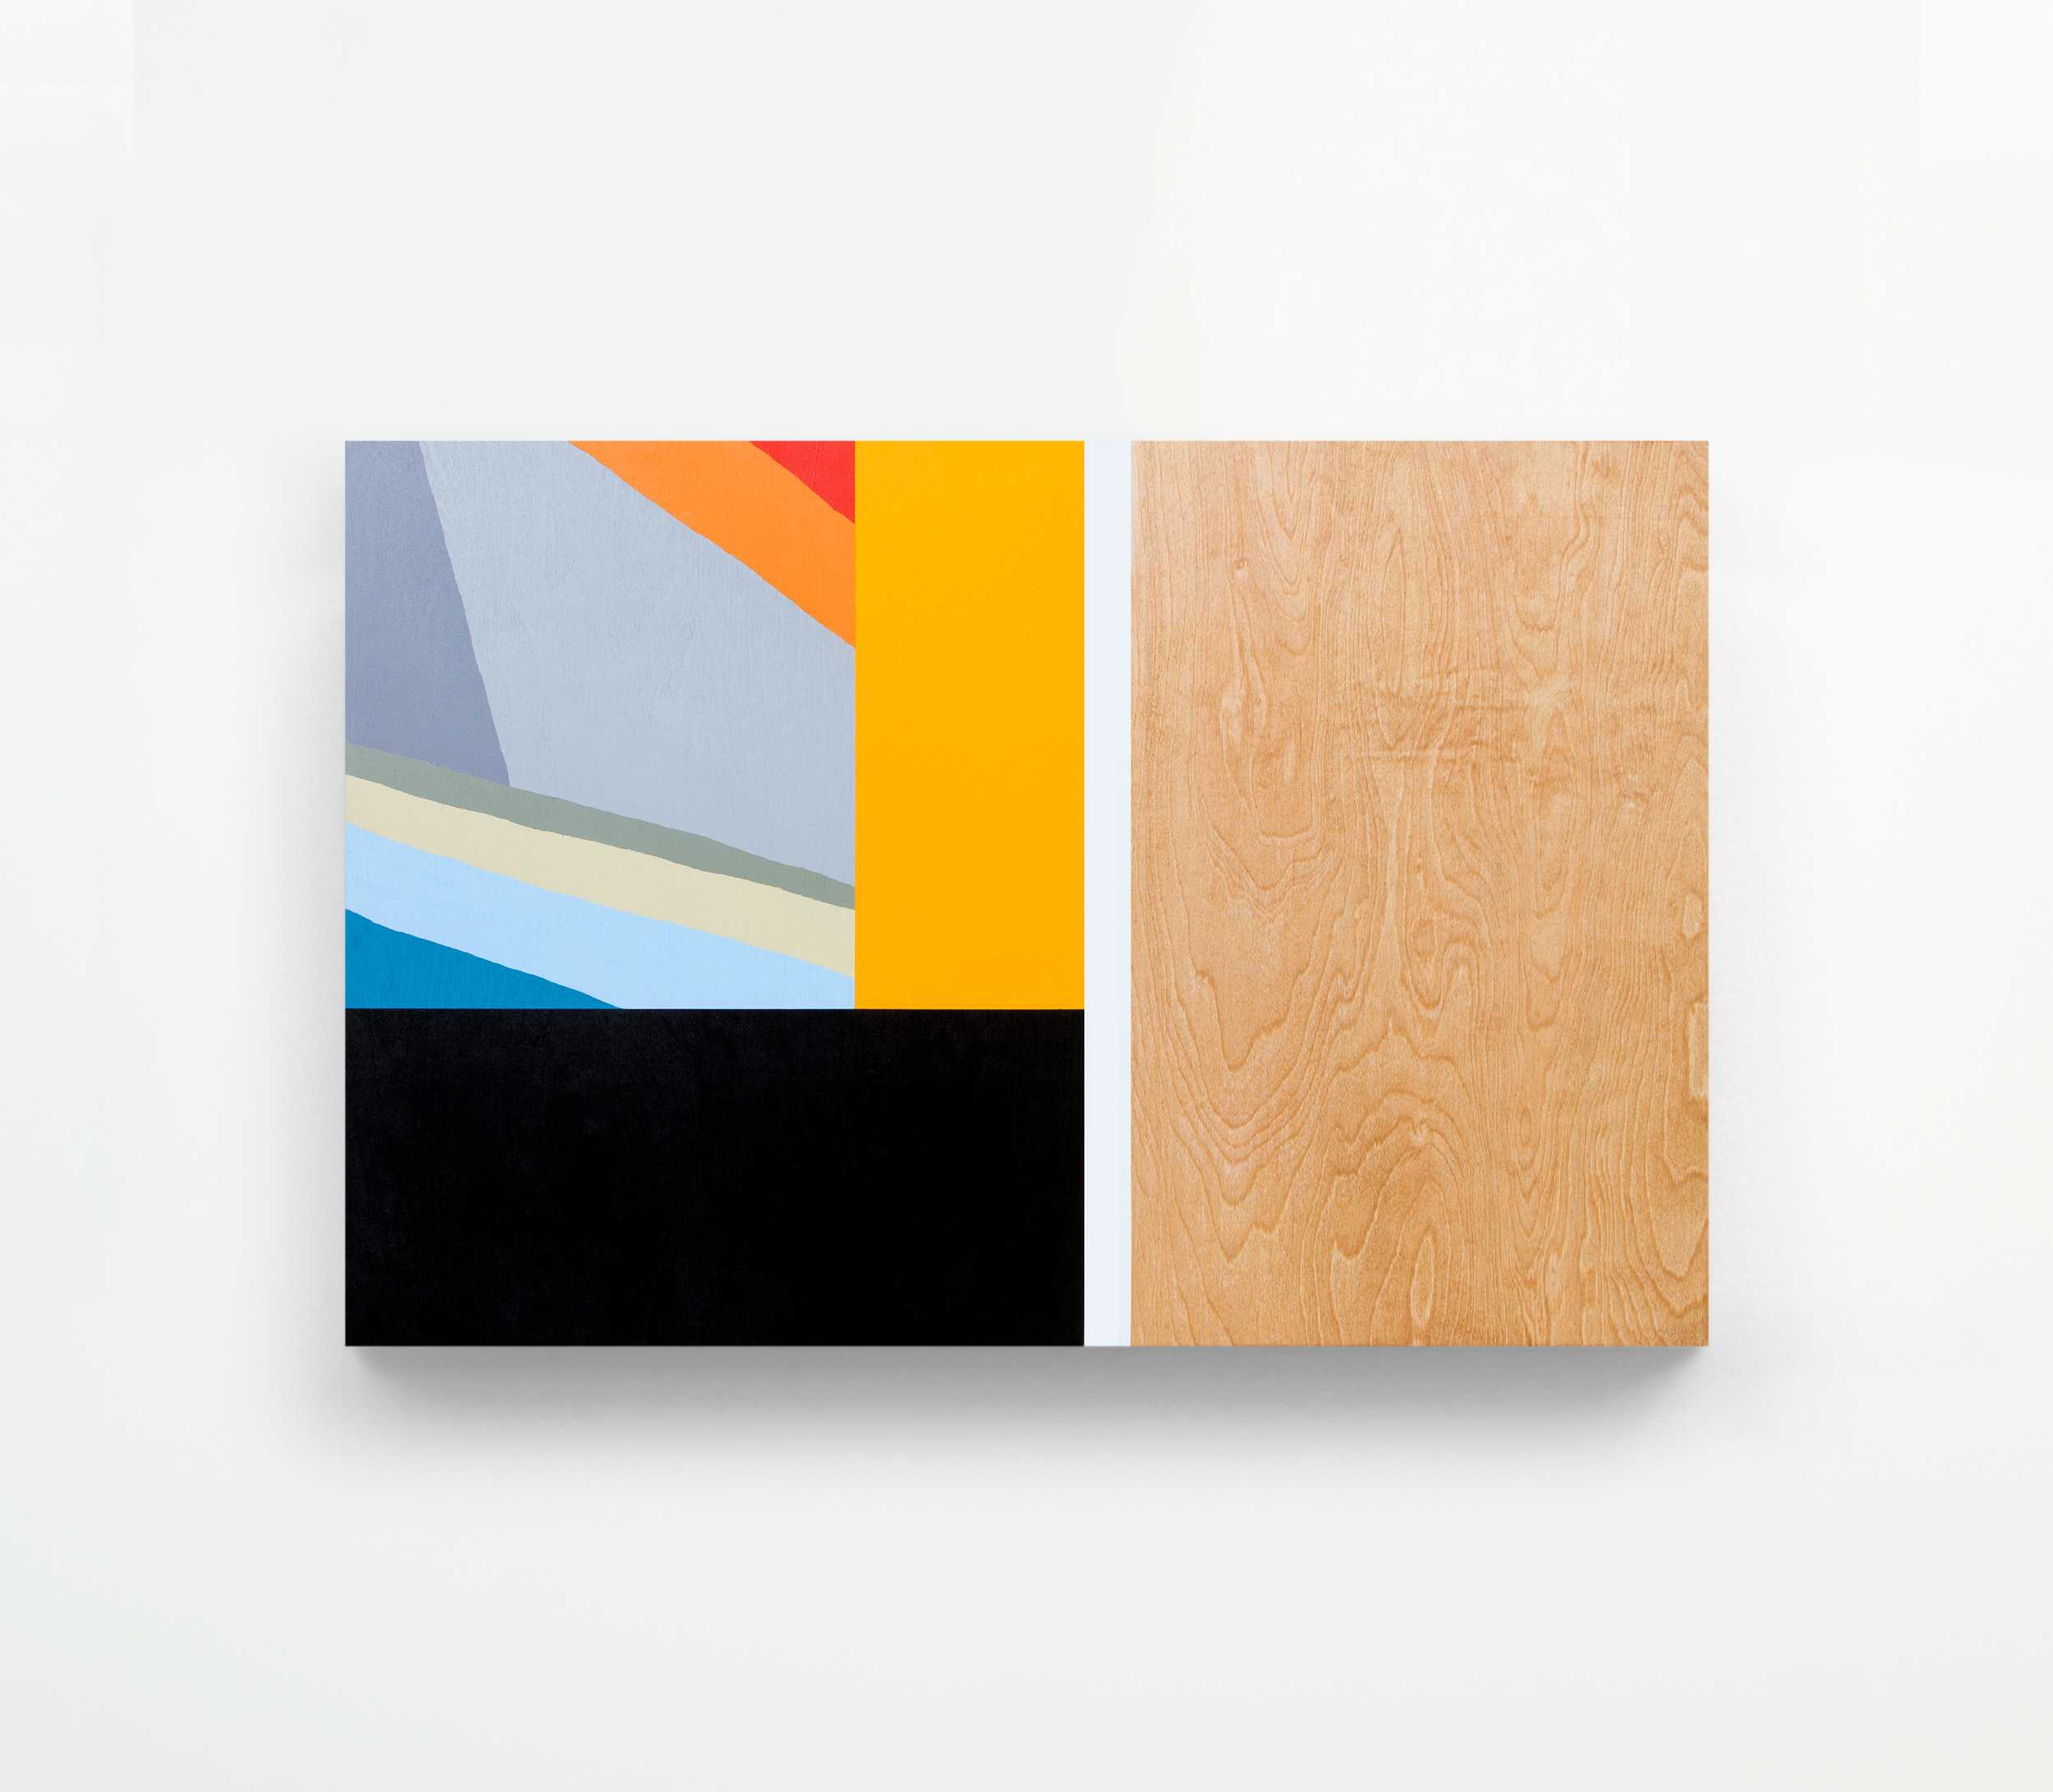 Untitled, 2015 Spray paint on wood 36 x 24 inches